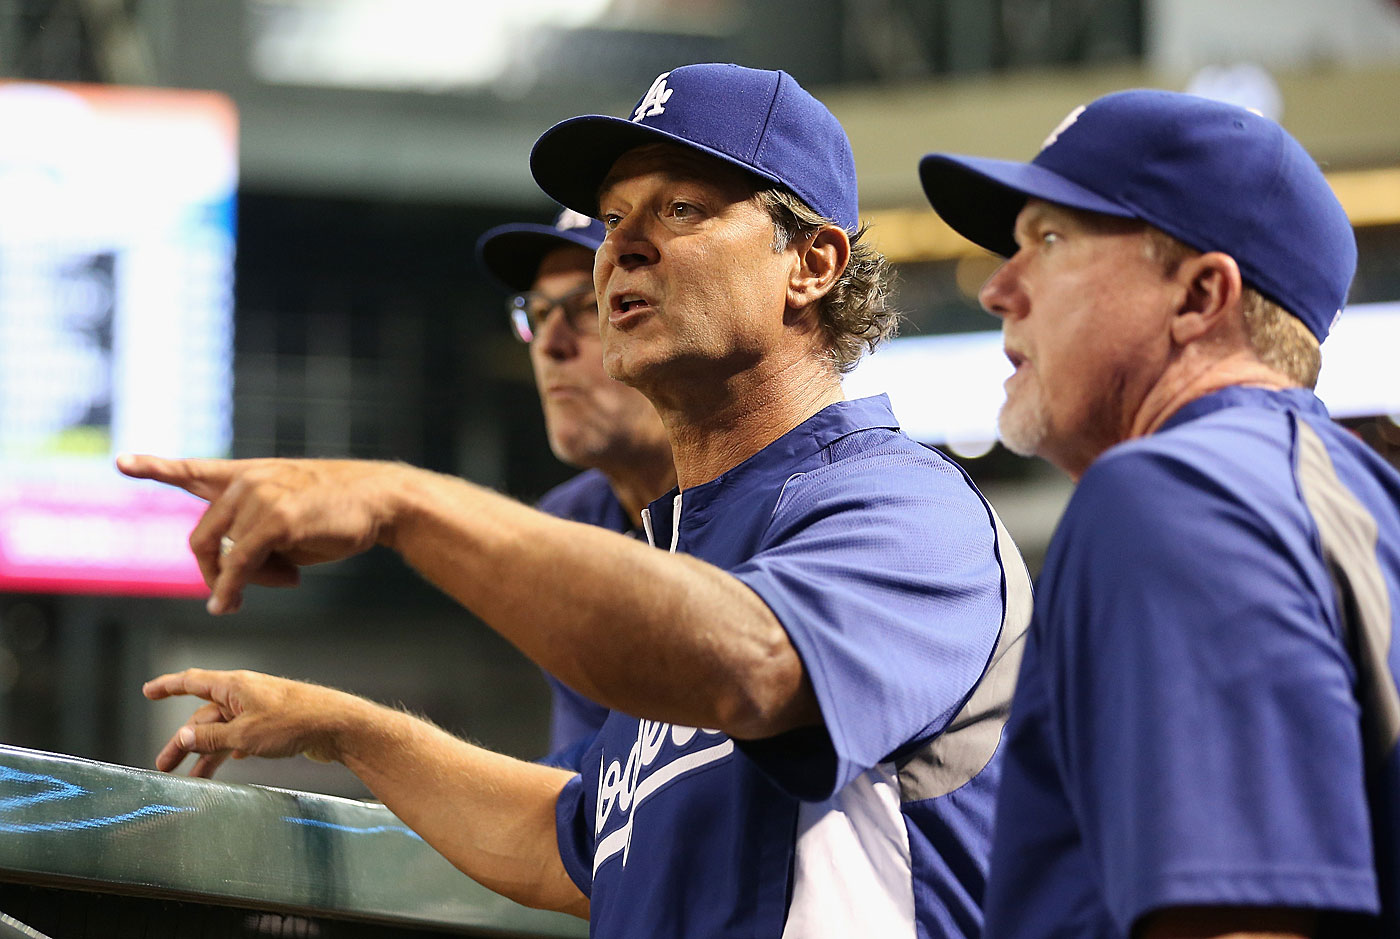 LA Dodgers manager Don Mattingly runs the show from the dugout, involving himself before nearly every pitch